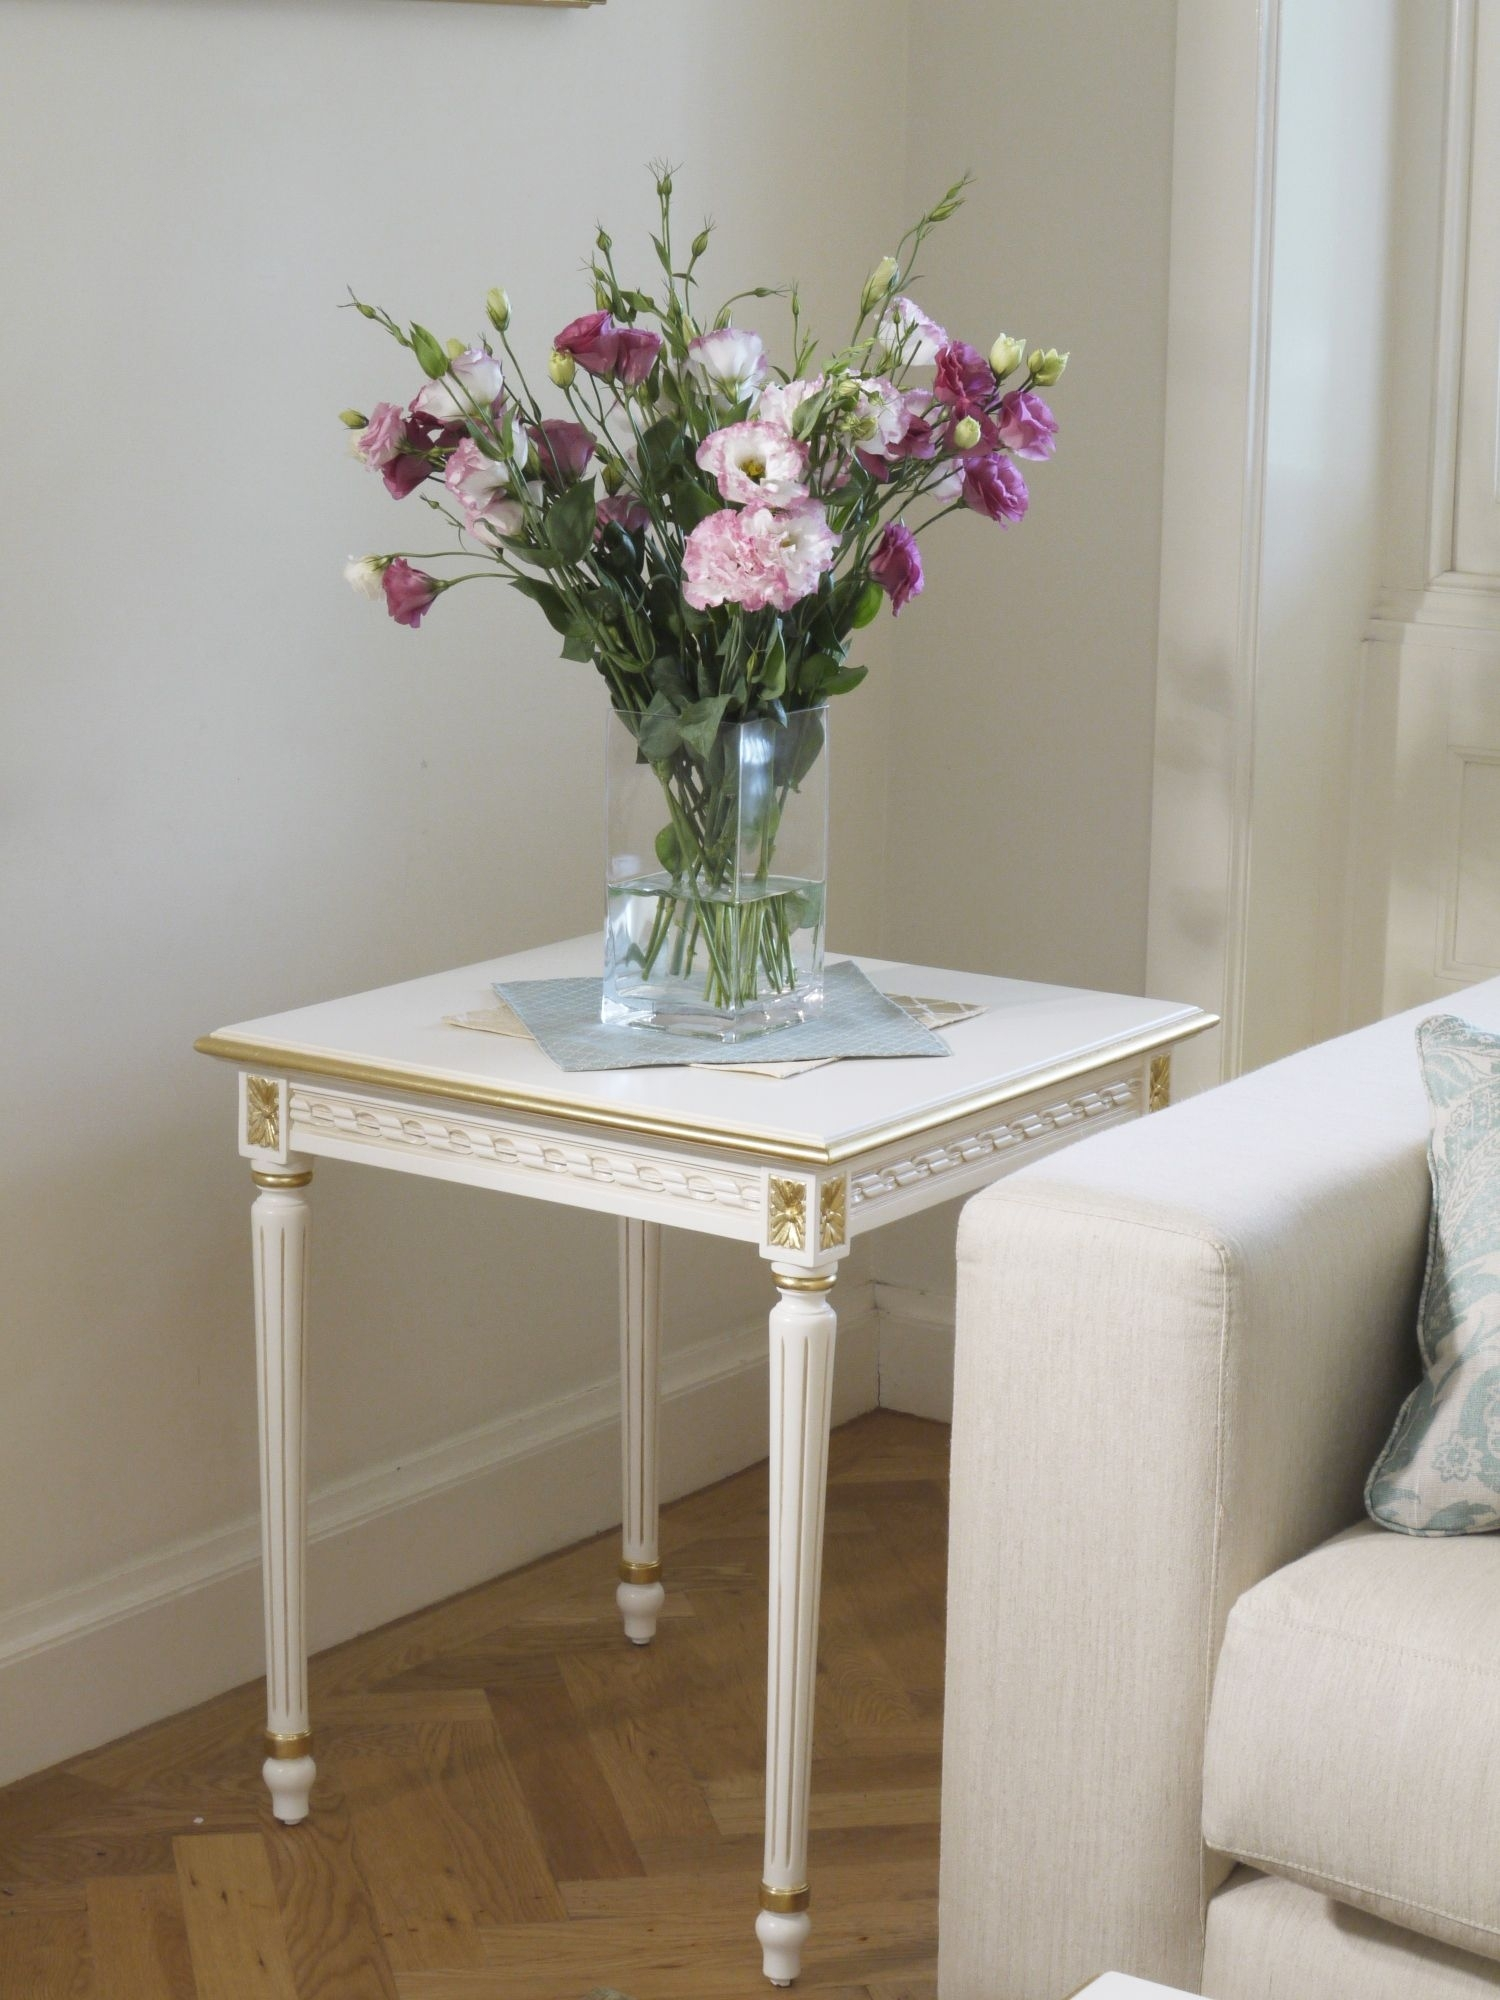 Louis Xvi Side Table Antique White With Gilding | The French Lounge within Fresh Cut Side Tables (Image 19 of 30)